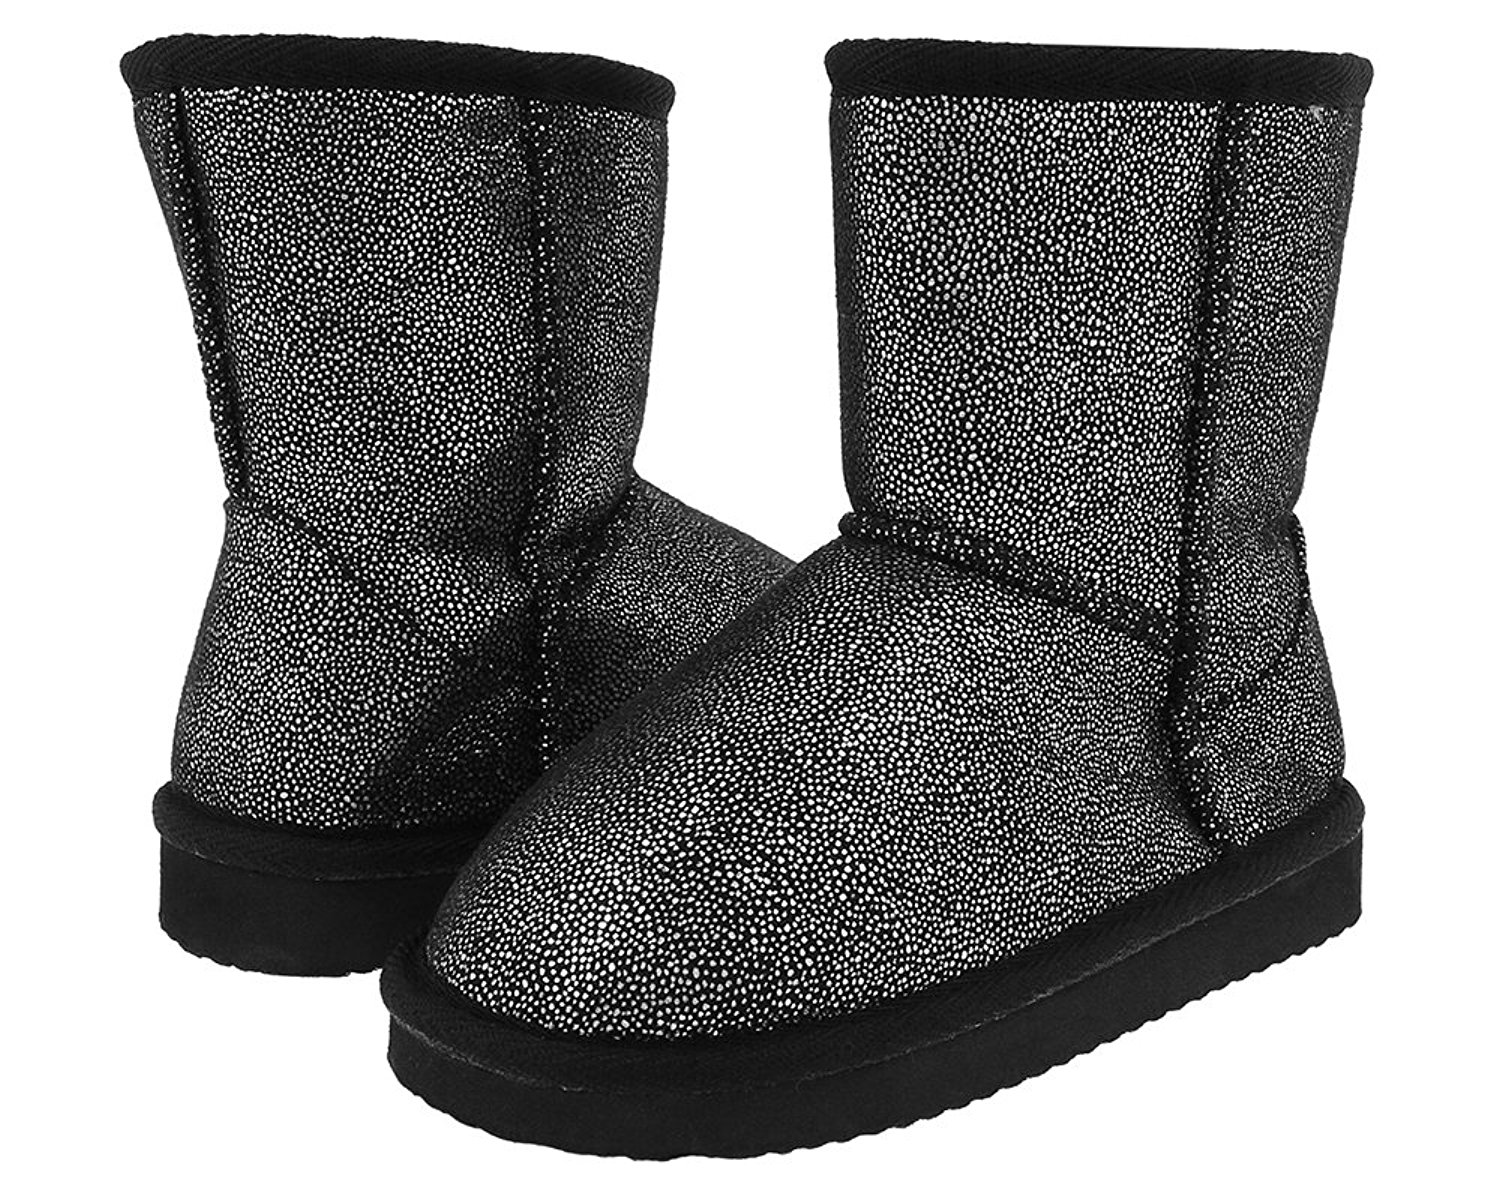 Capelli New York Metallic Printed Faux Suede with Faux Fur Lining on a Fabric Girls Boot